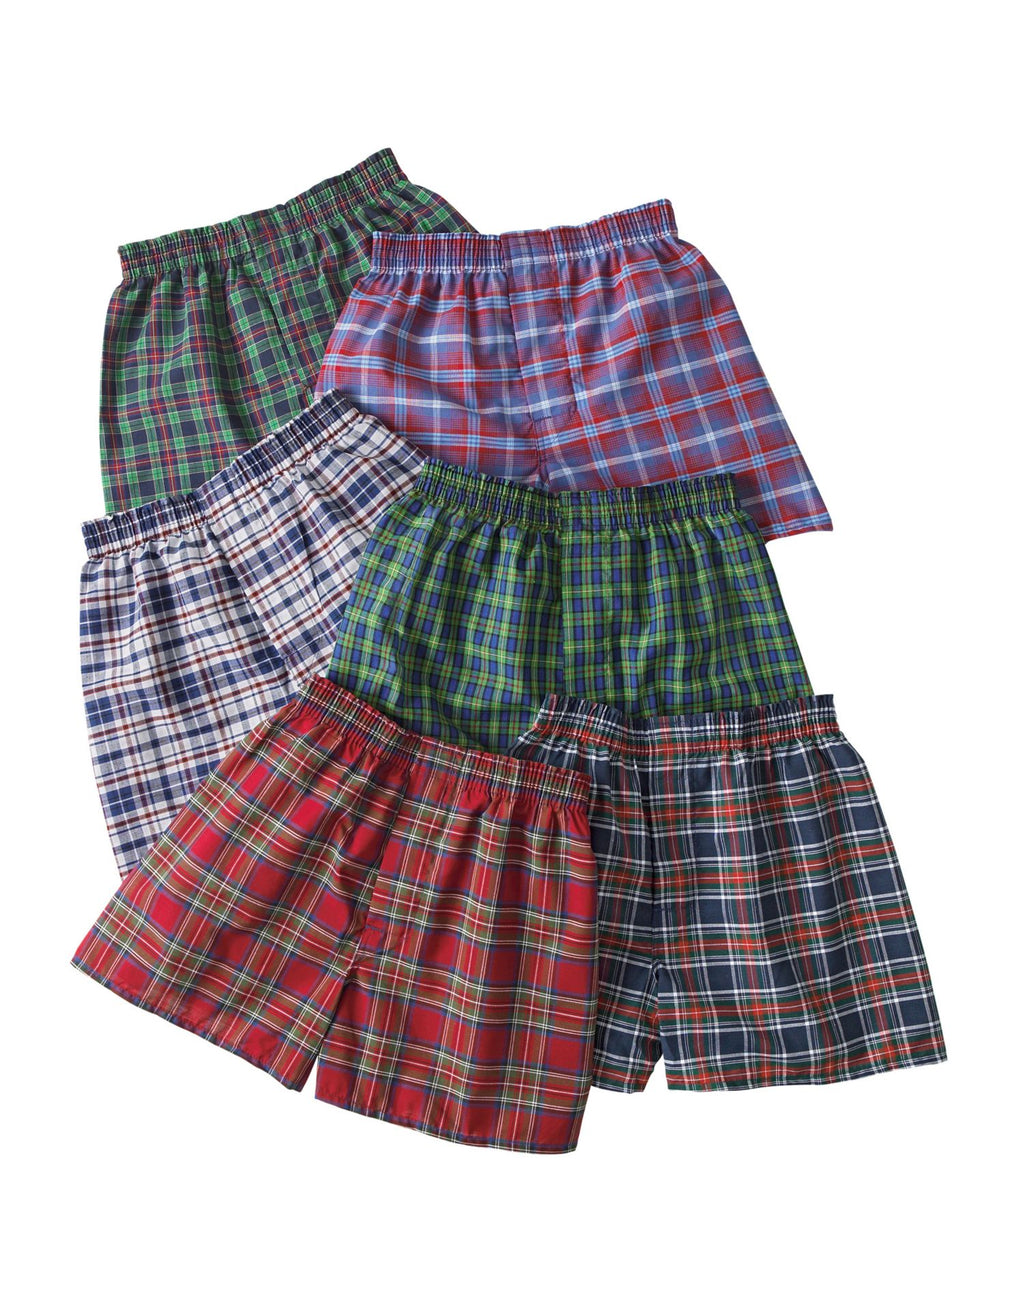 Hanes Boys Red Label Tartan Boxer, 5 Pack